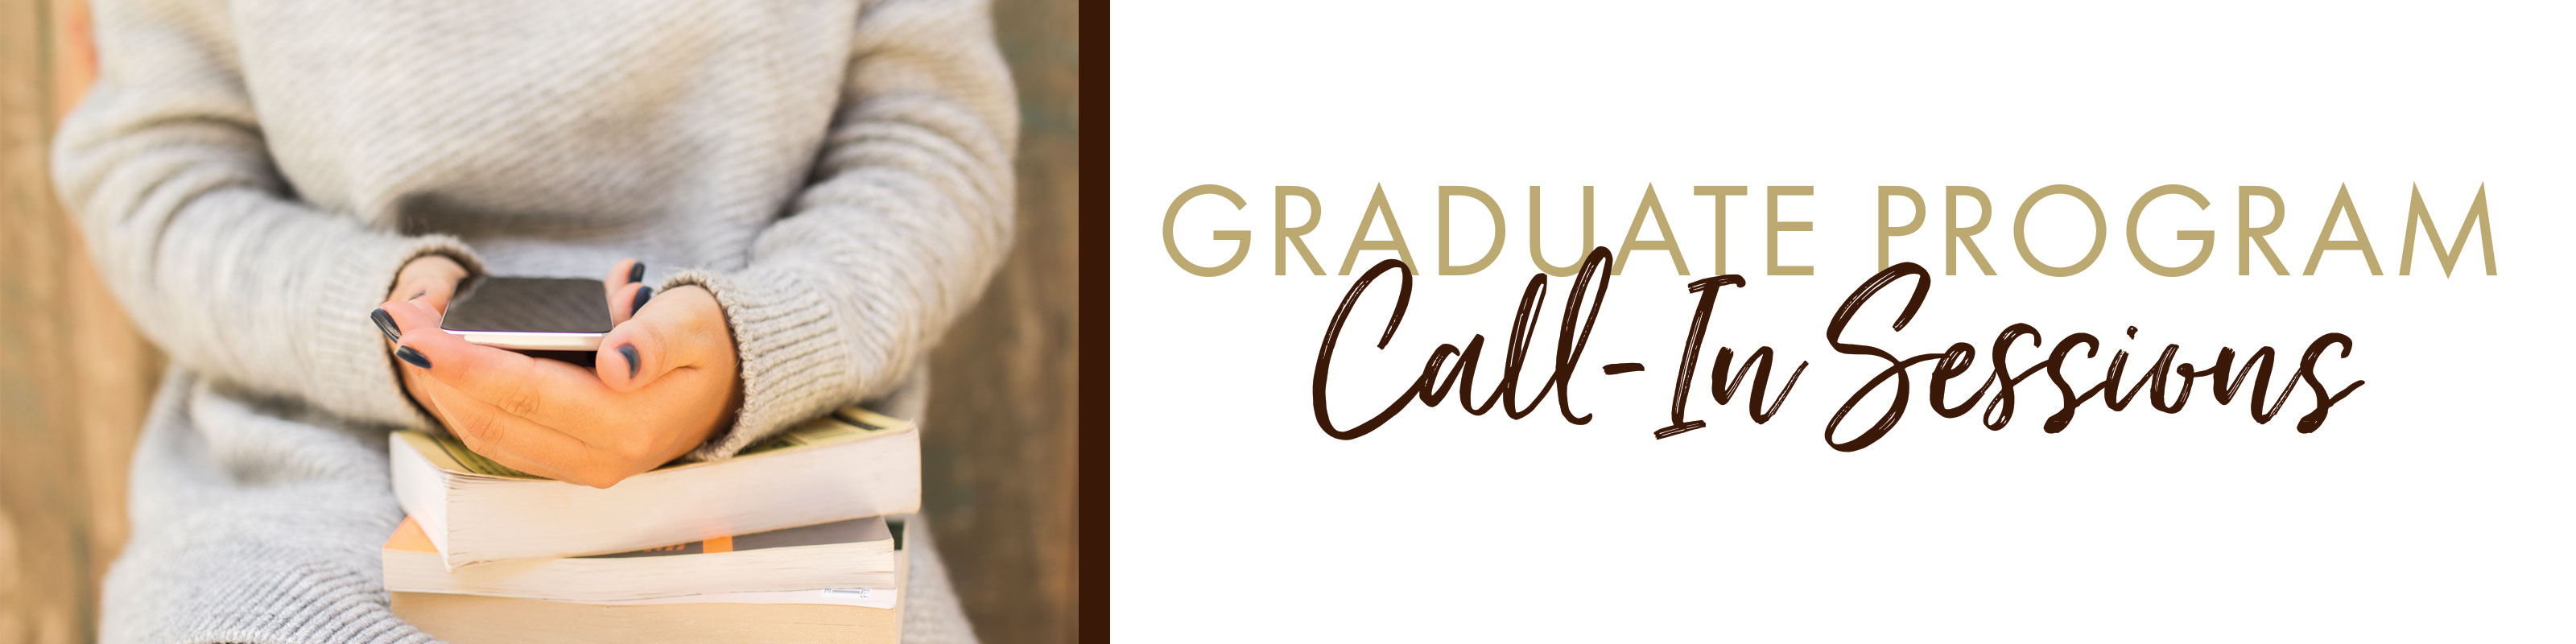 Graduate Program Call-In Sessions